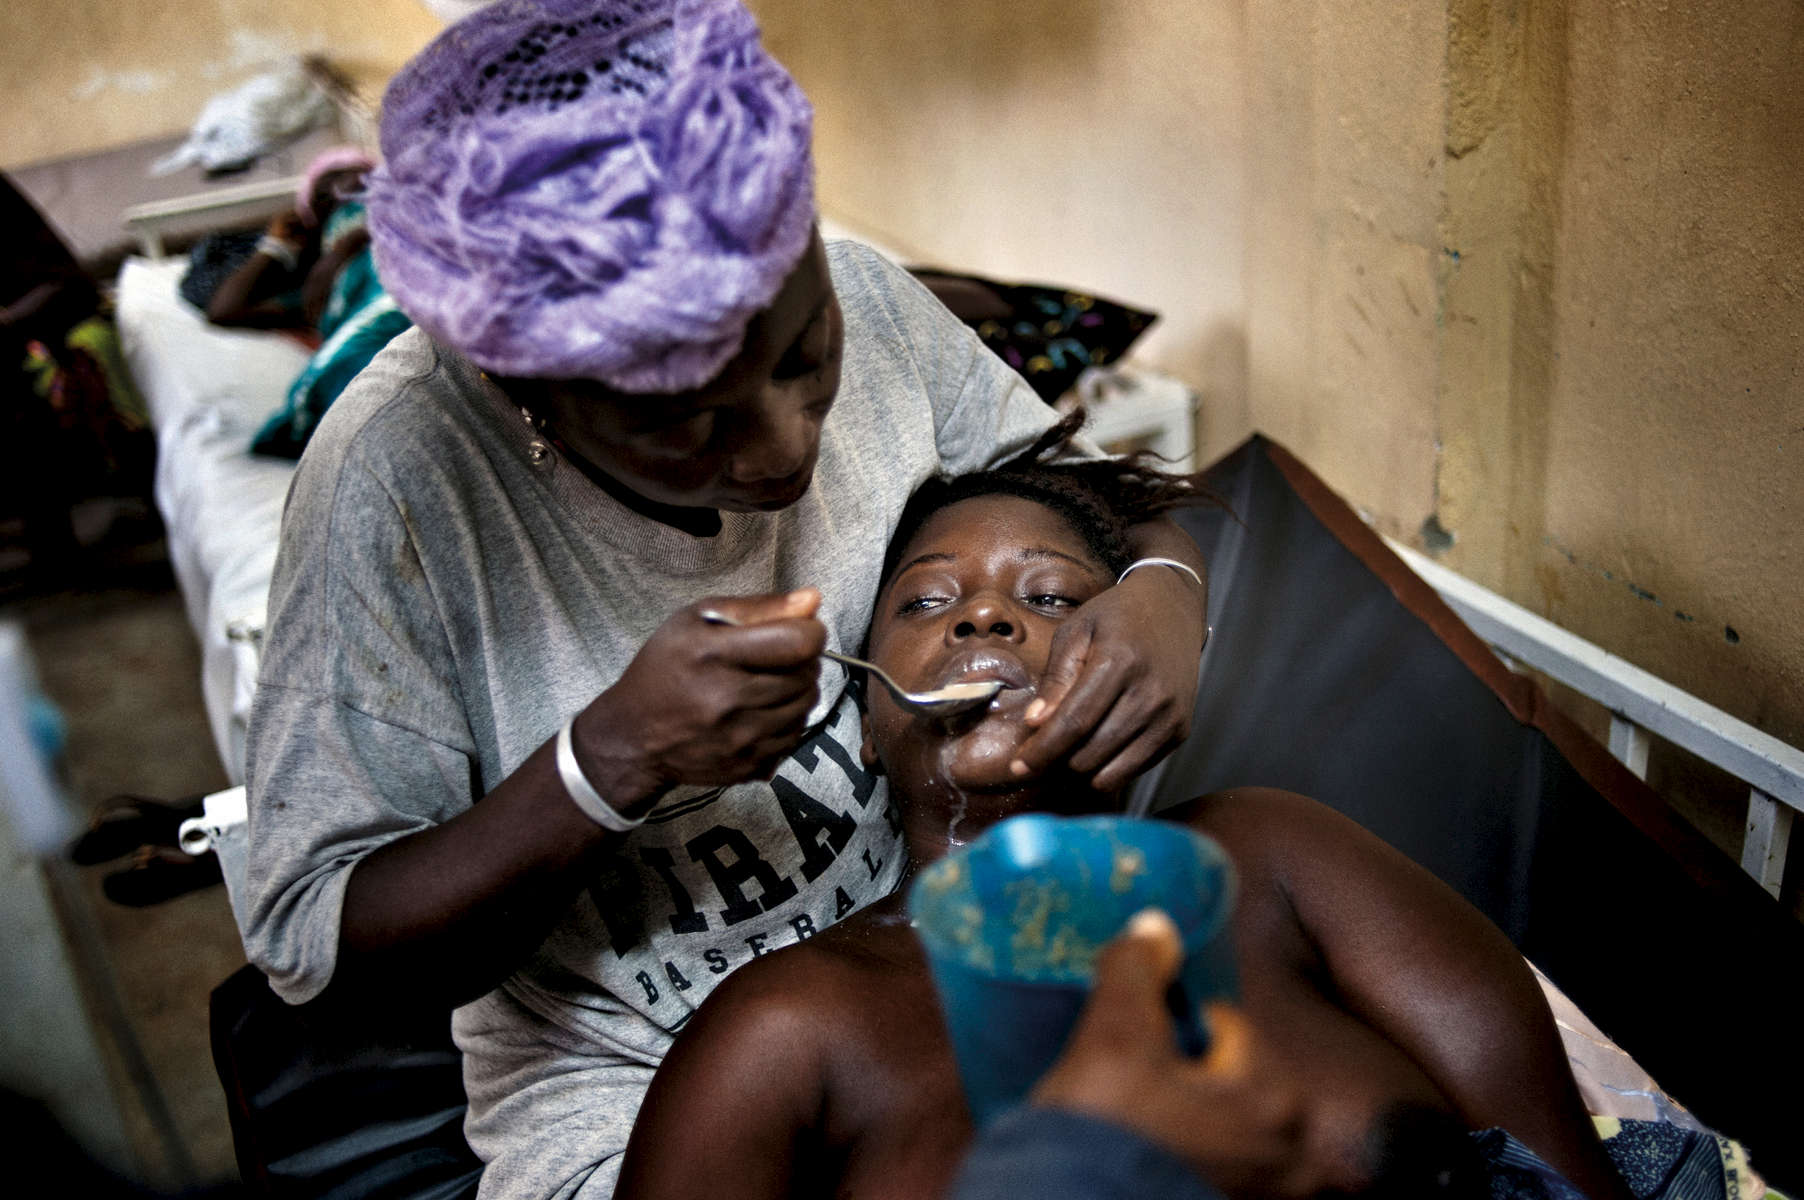 Rukiatu Gbassah feeds her daughter, Adama Gbassah, thirty-one, who remains in a comadue to complications associated with preeclampsia days after delivering her first child atthe Gondama Referral Center in Bo District, Sierra Leone, October 2012